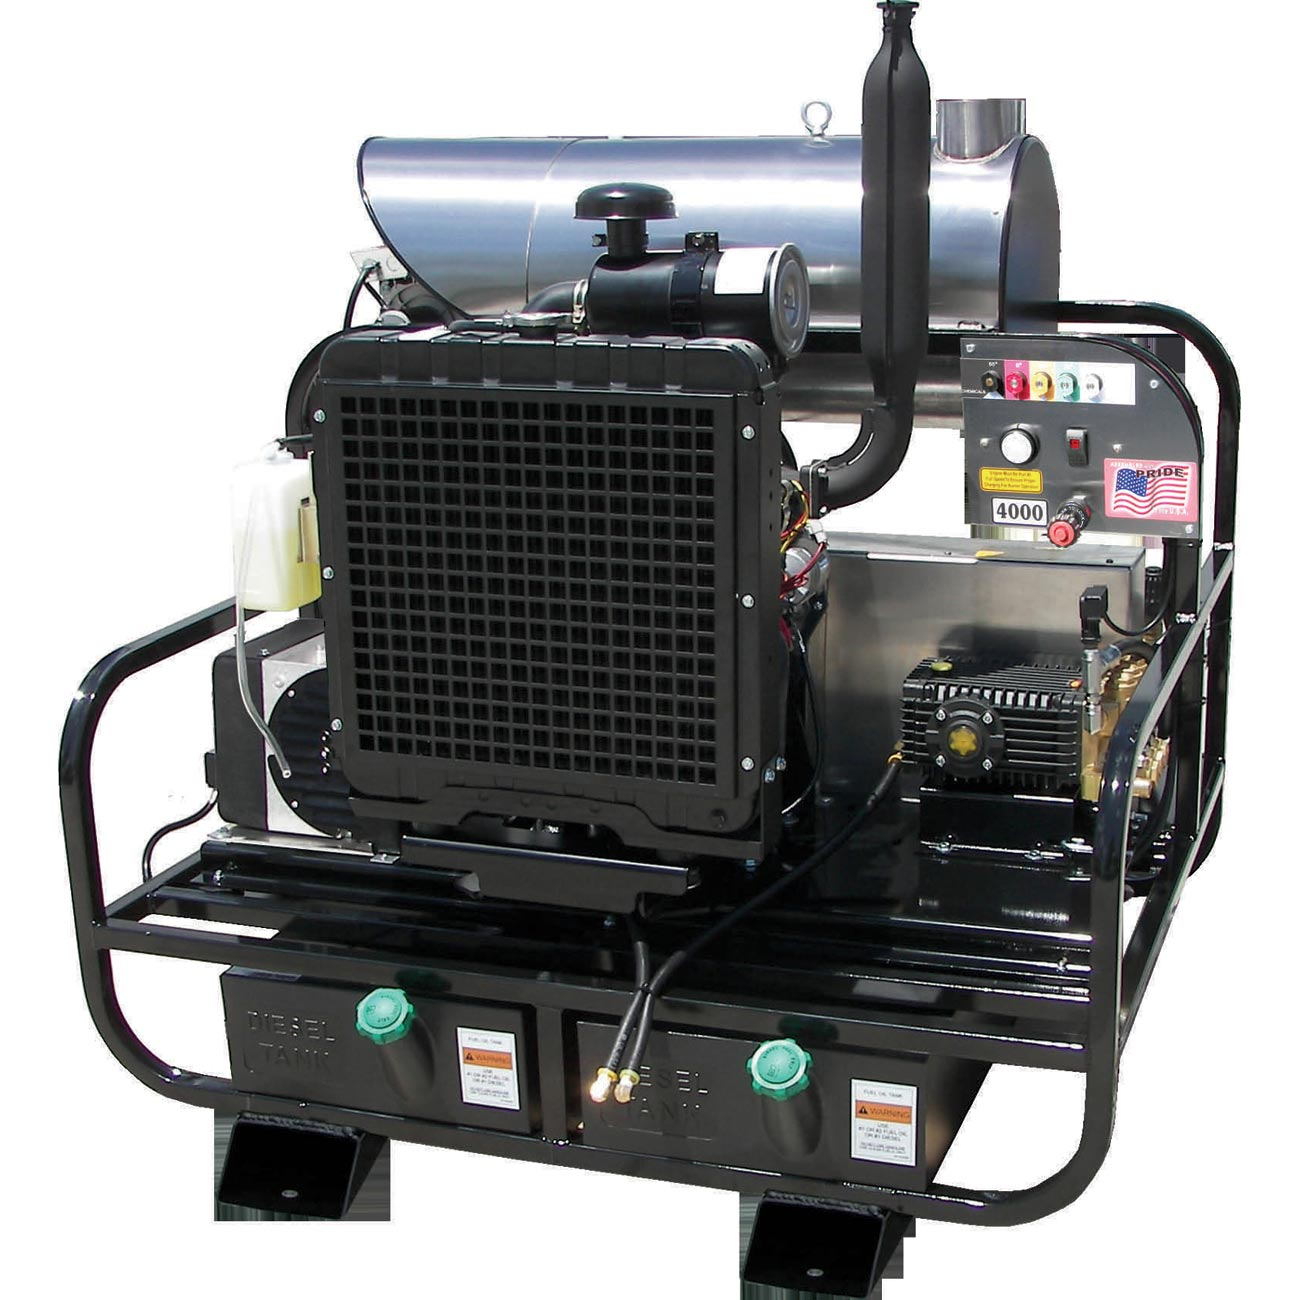 Pressure Pro 8115PRO-35KDG Diesel Hot Water Skid 3500 psi 8 gpm Kubota Engine General HP Pump Freight Included 2500 Watt Generator